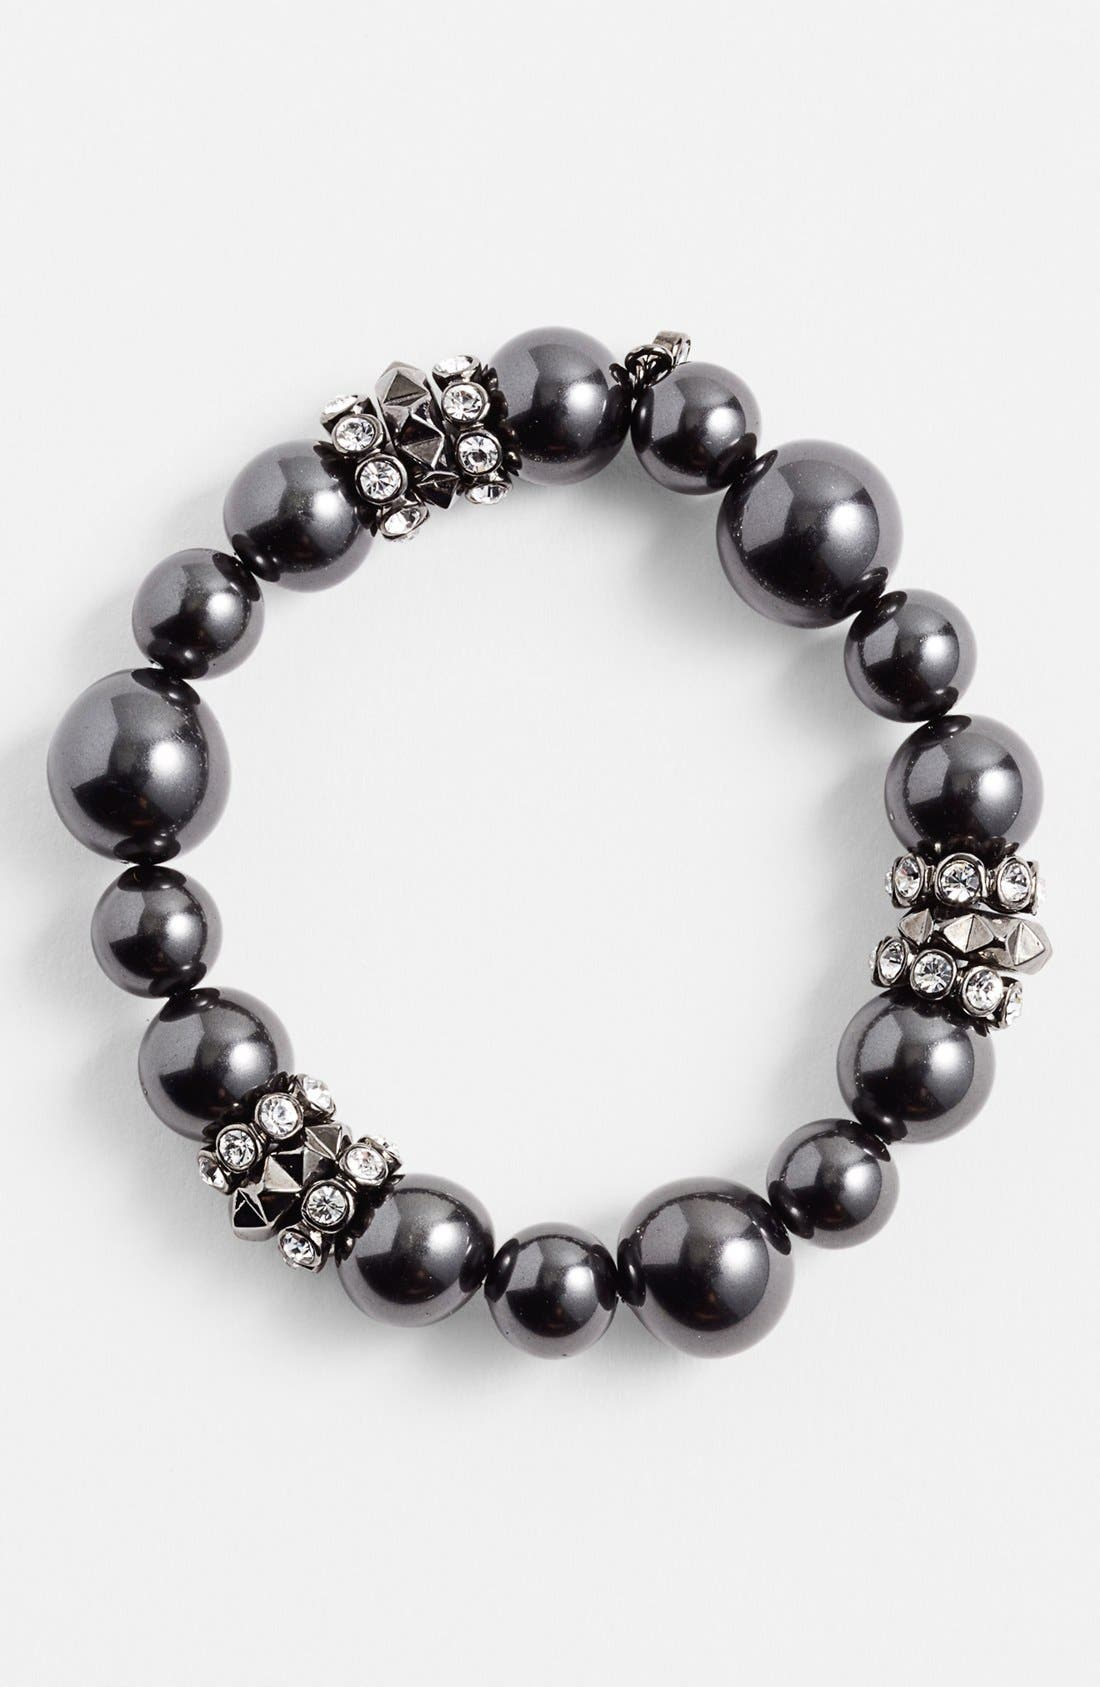 Alternate Image 1 Selected - Givenchy Faux Pearl Stretch Bracelet (Nordstrom Exclusive)